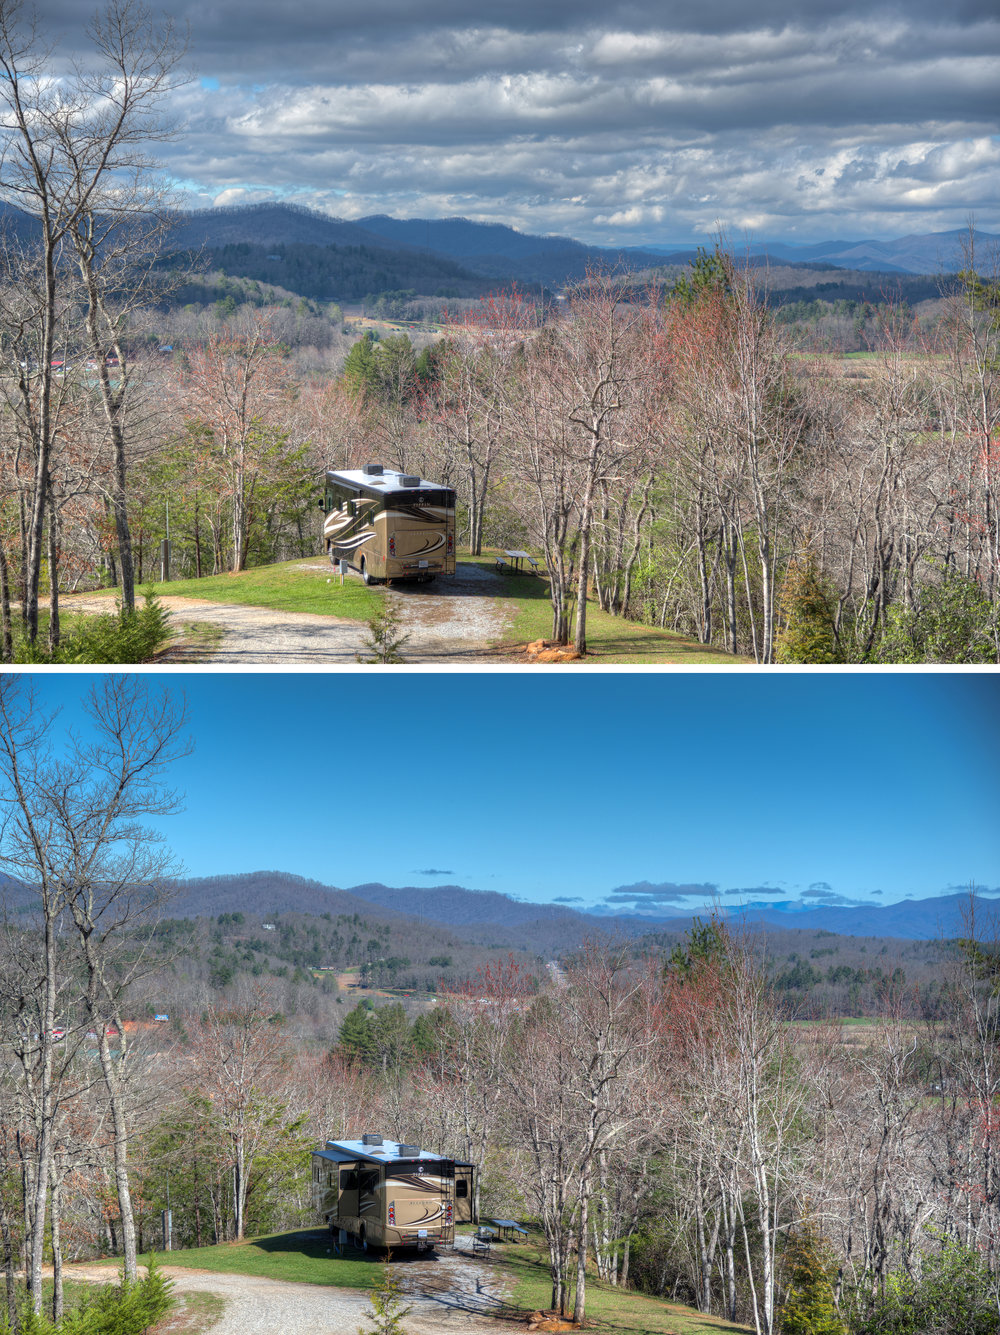 Afternoon and morning photos of our campsite at Cardinal Ridge Farm, with an early Spring view of the Blue Ridge Mountains of western North Carolina